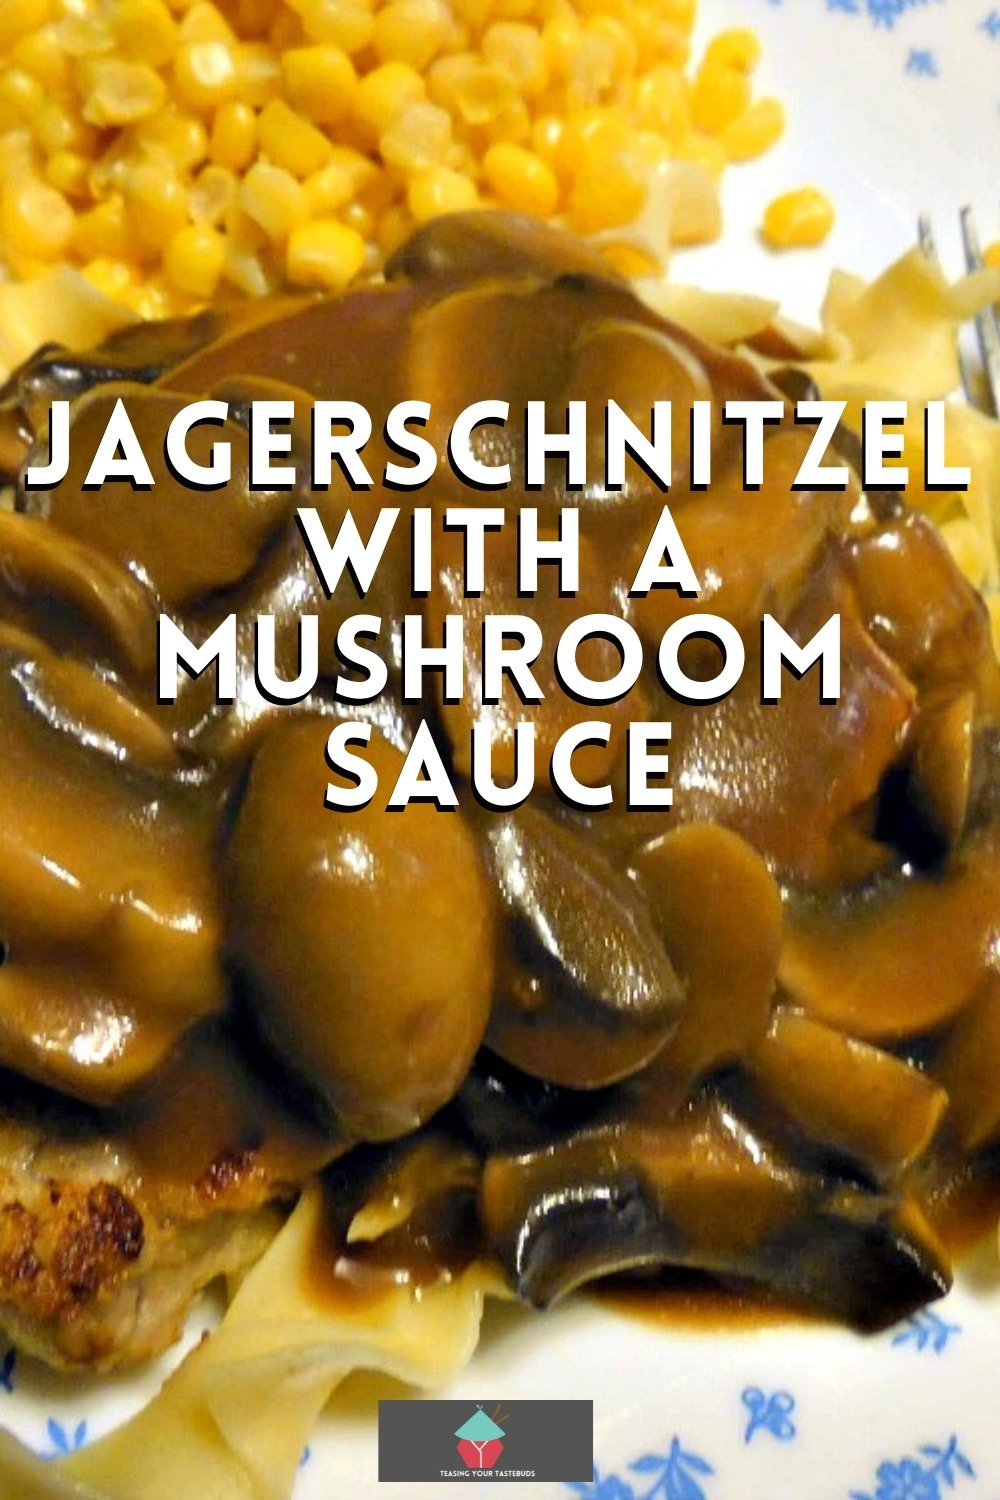 Jagerschnitzel! This is a lovely easy recipe for Pork pan fried in butter then topped with a delicious mushroom sauce. Very popular In parts of Germany and often served with Spaetzle or pasta